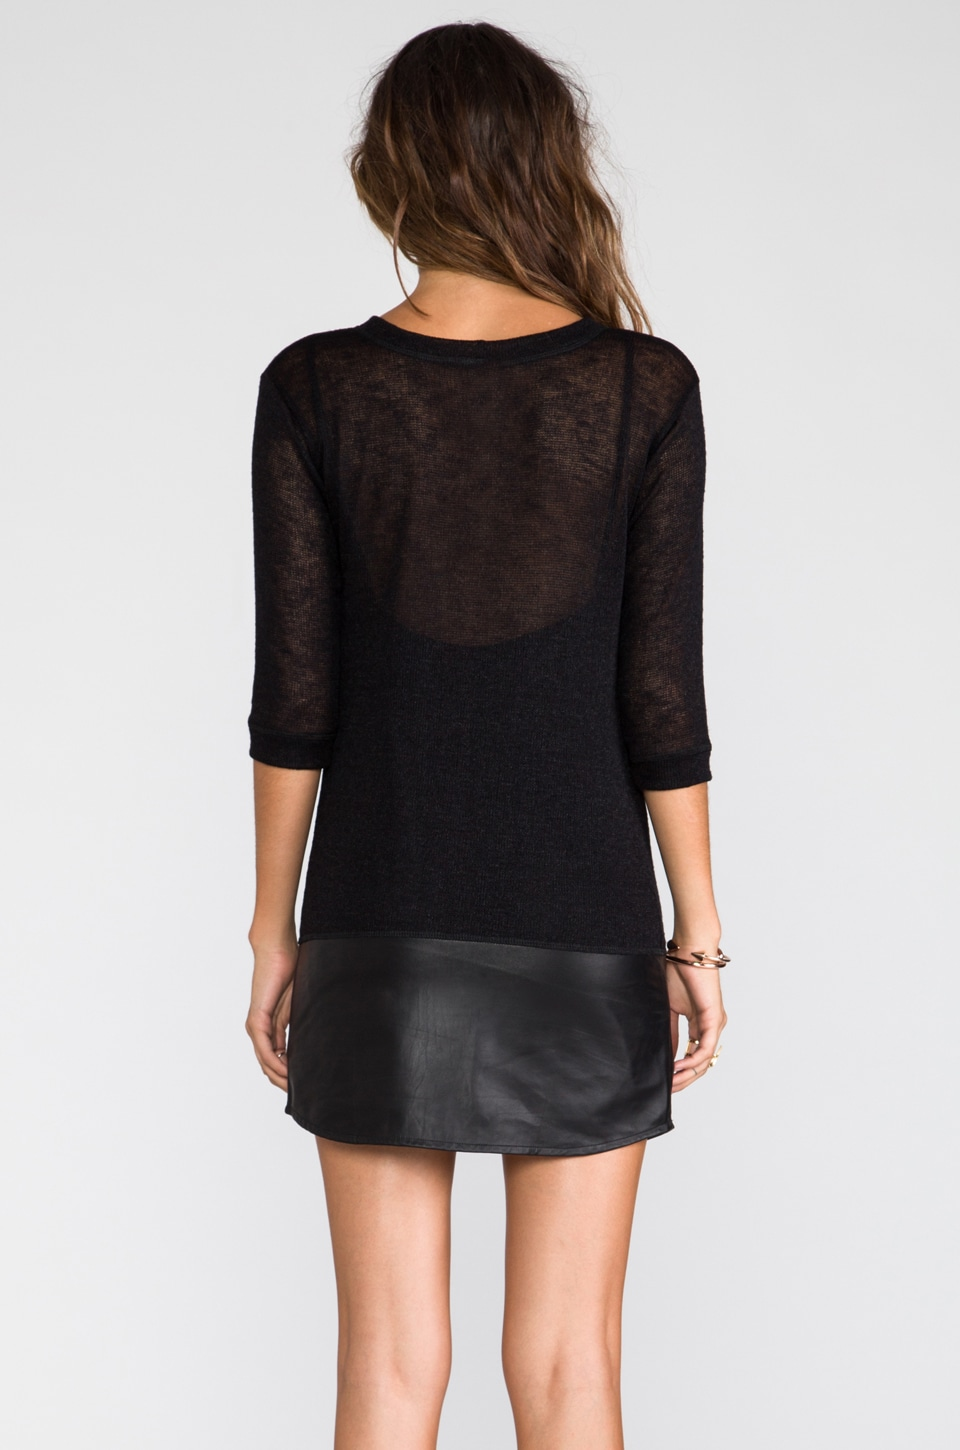 Tylie Leather Hem Knit Dress in Black